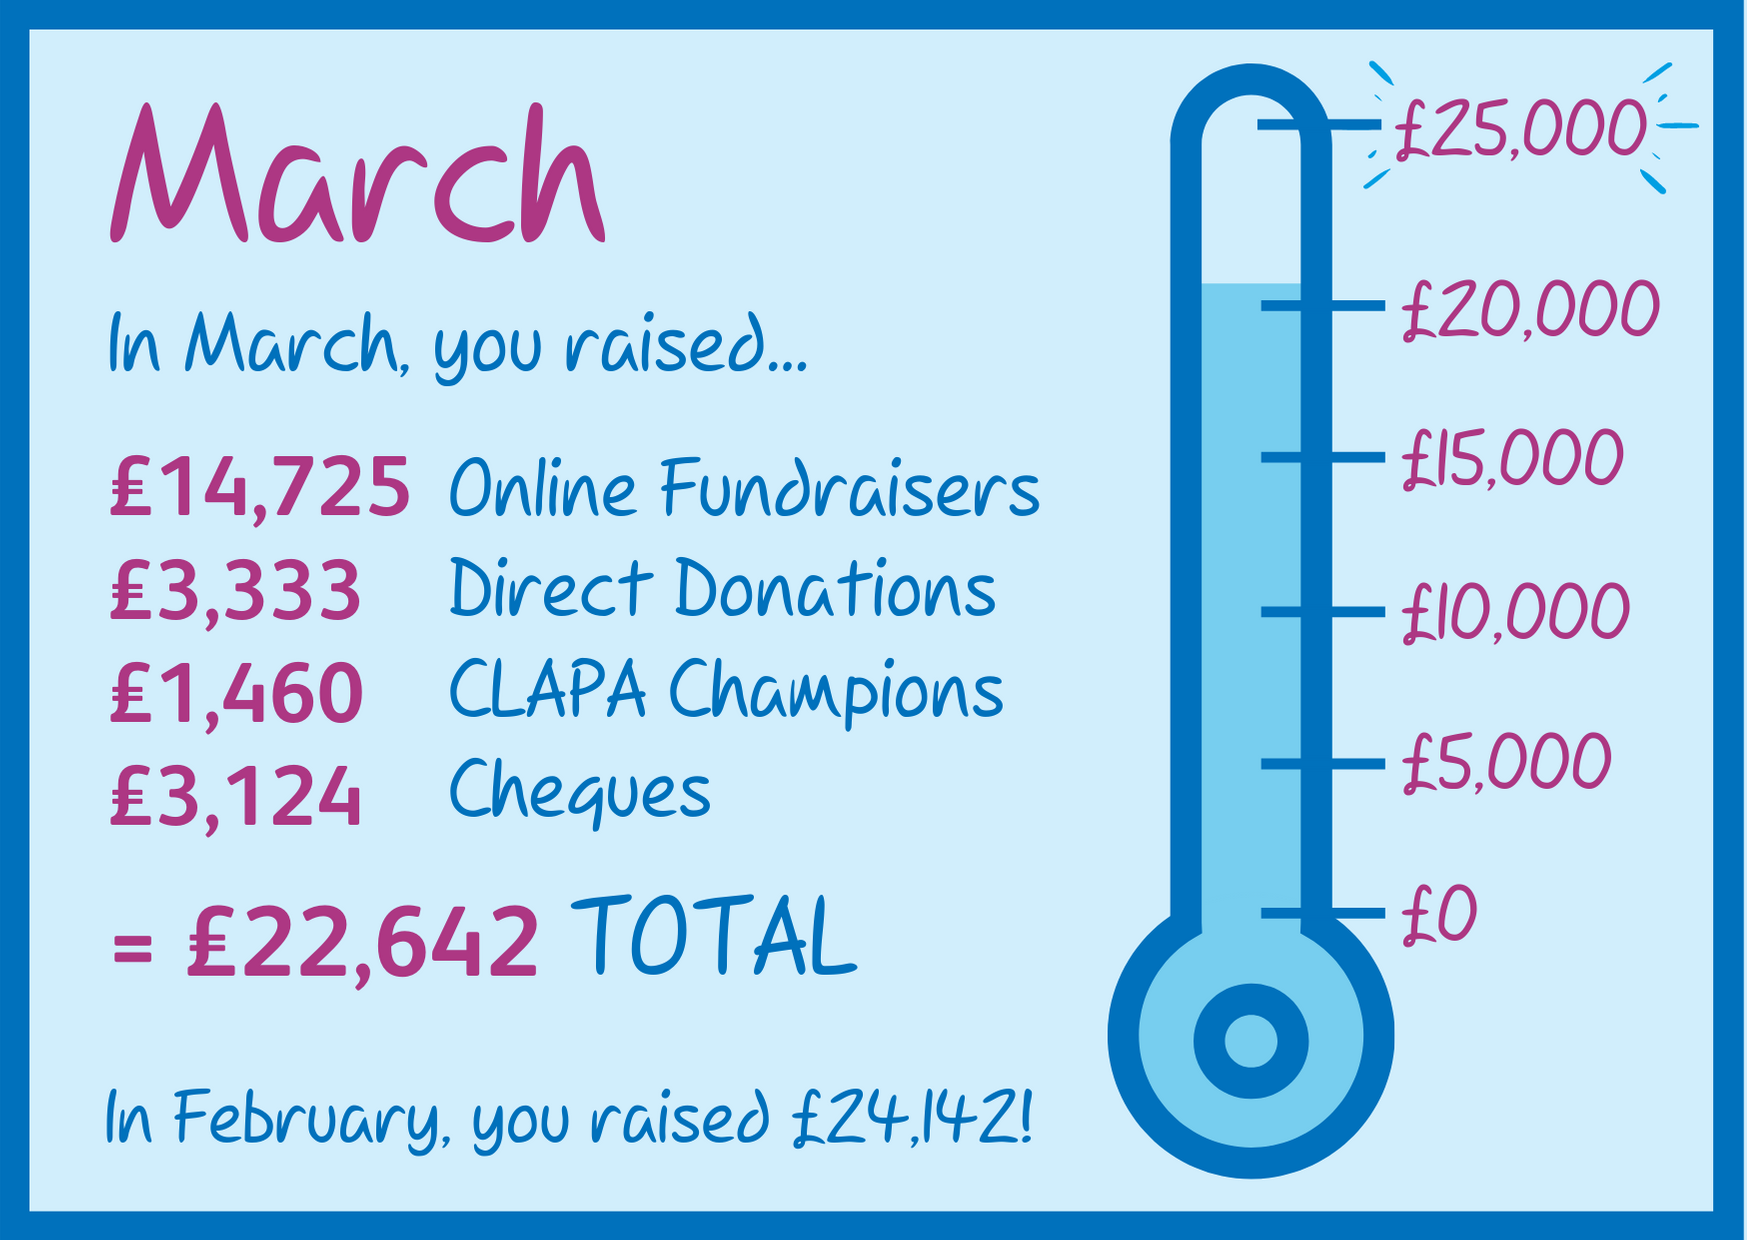 The total raised for March is £22,642 which is next to a turquoise and dark blue thermometer.